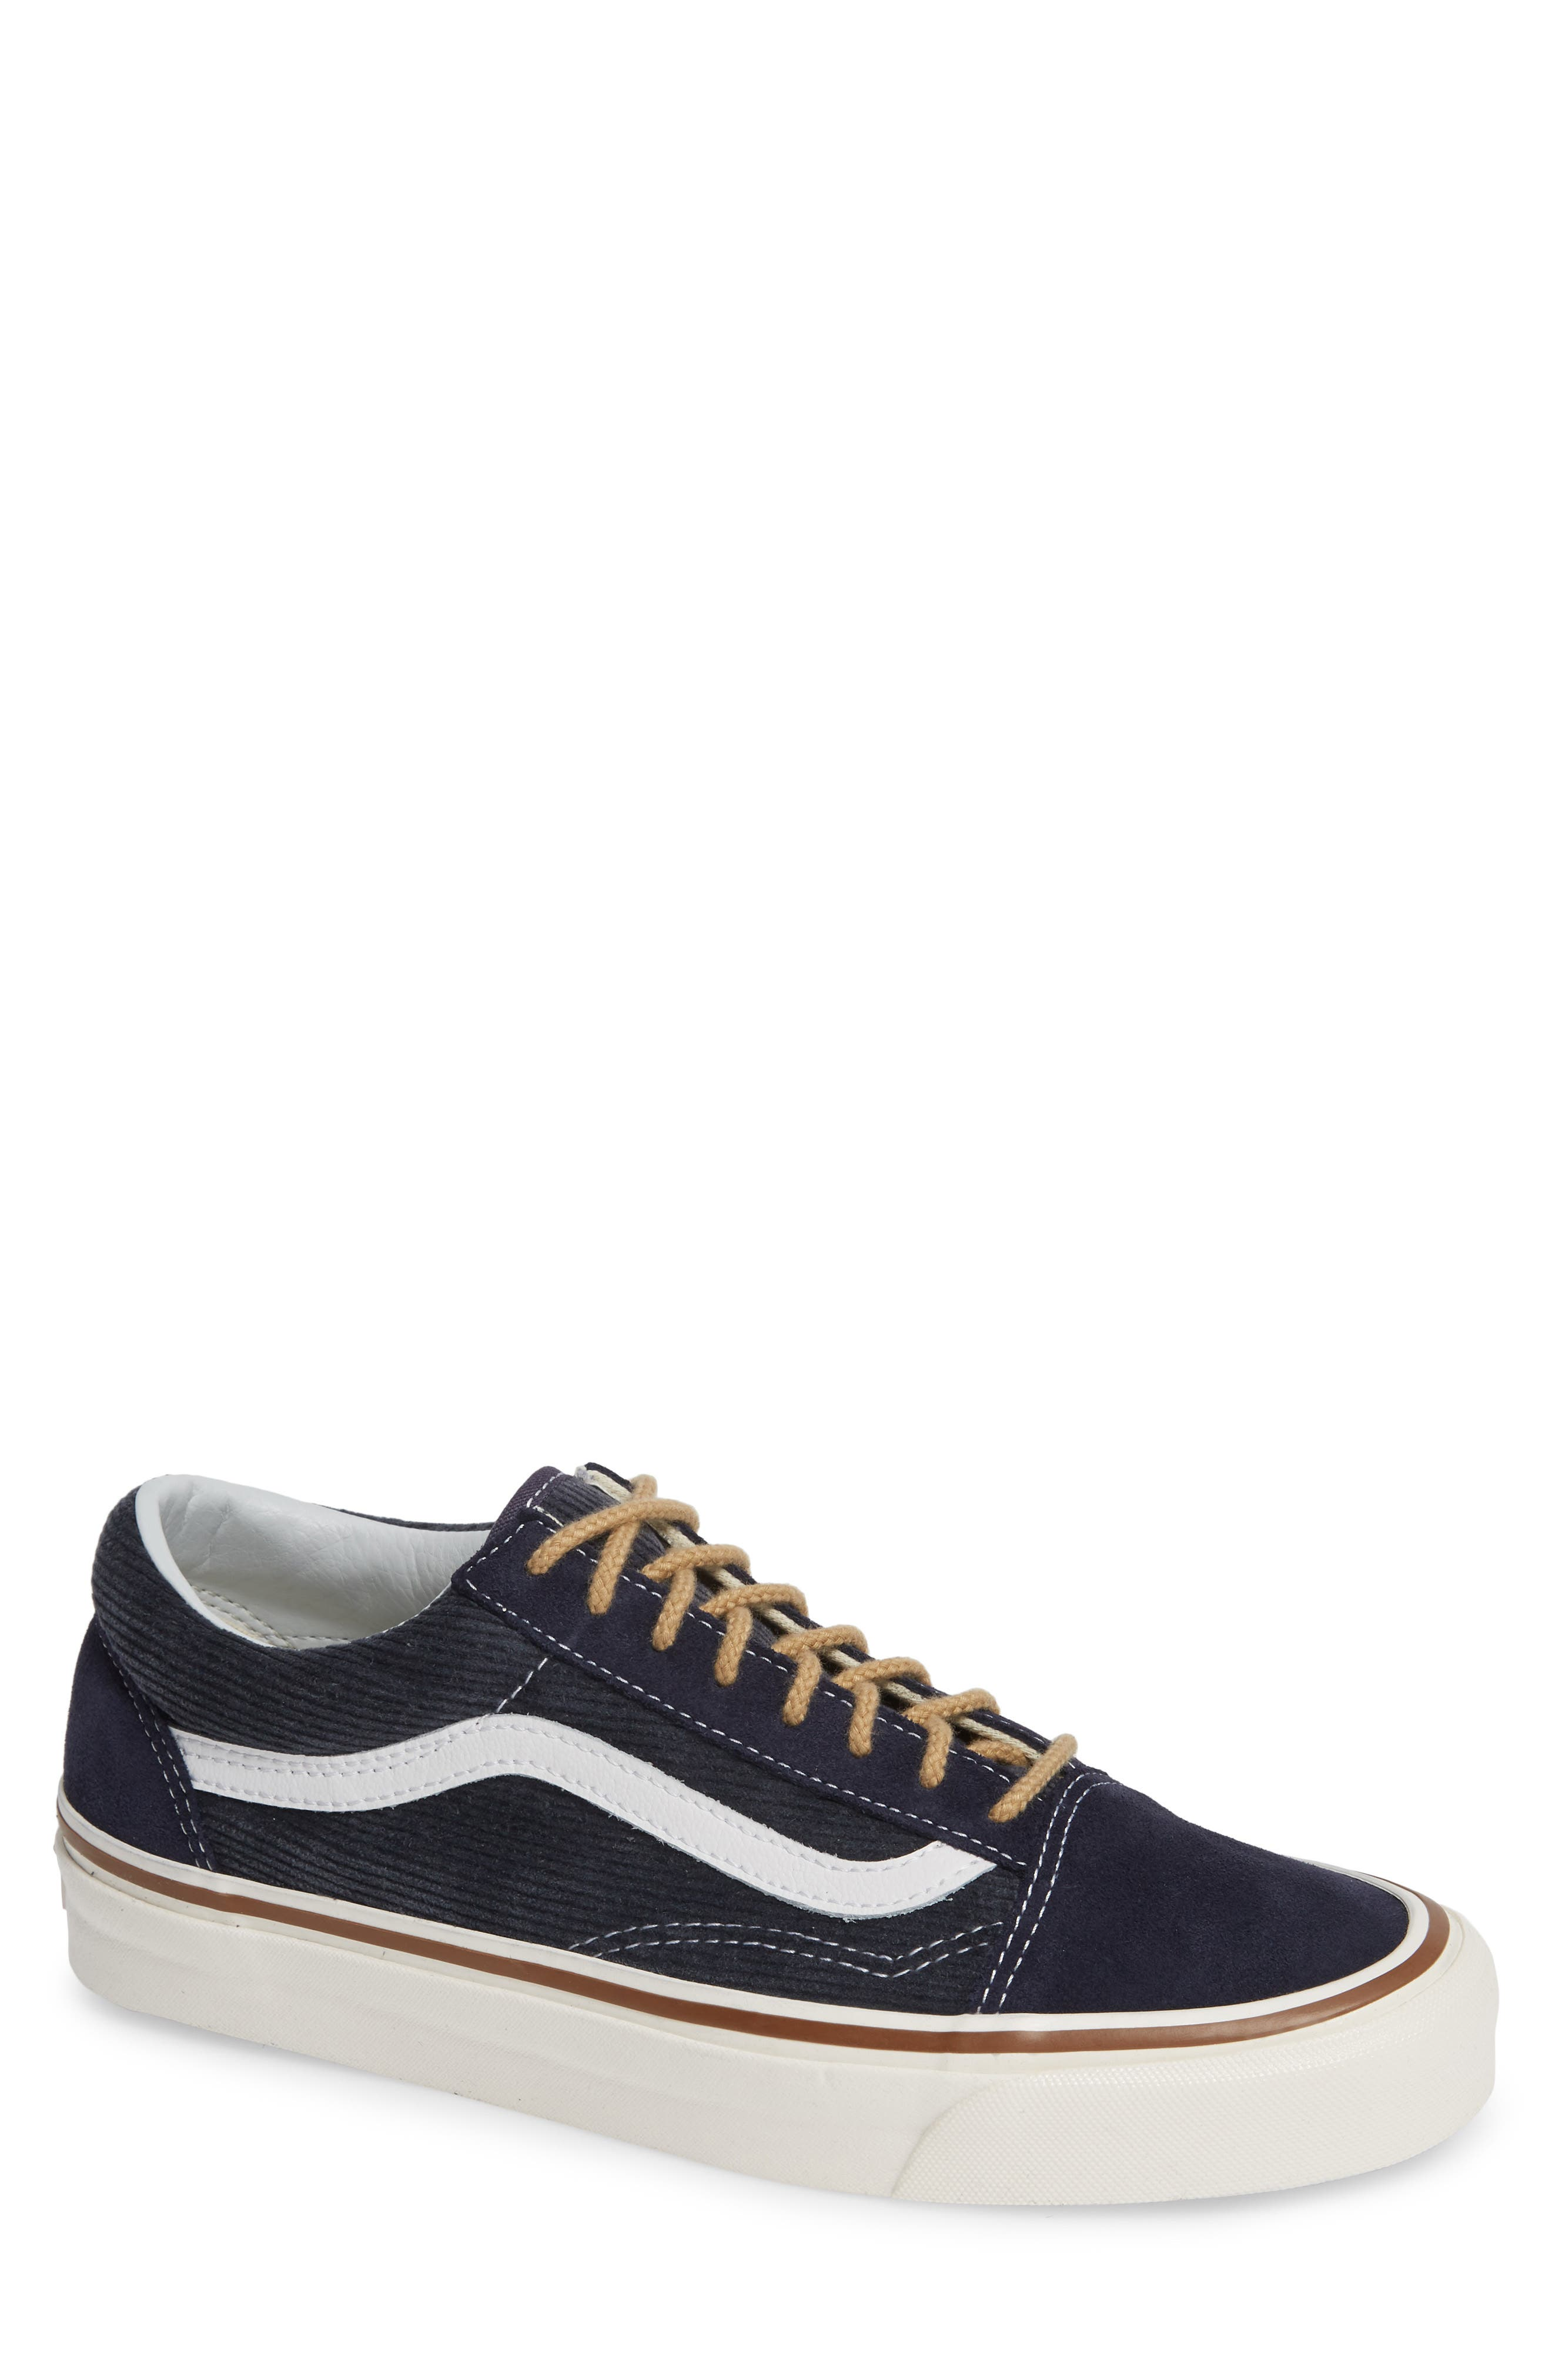 Anaheim Factory Old Skool 36 DX Sneaker,                             Main thumbnail 1, color,                             NAVY/ SUEDE/ CORDUROY